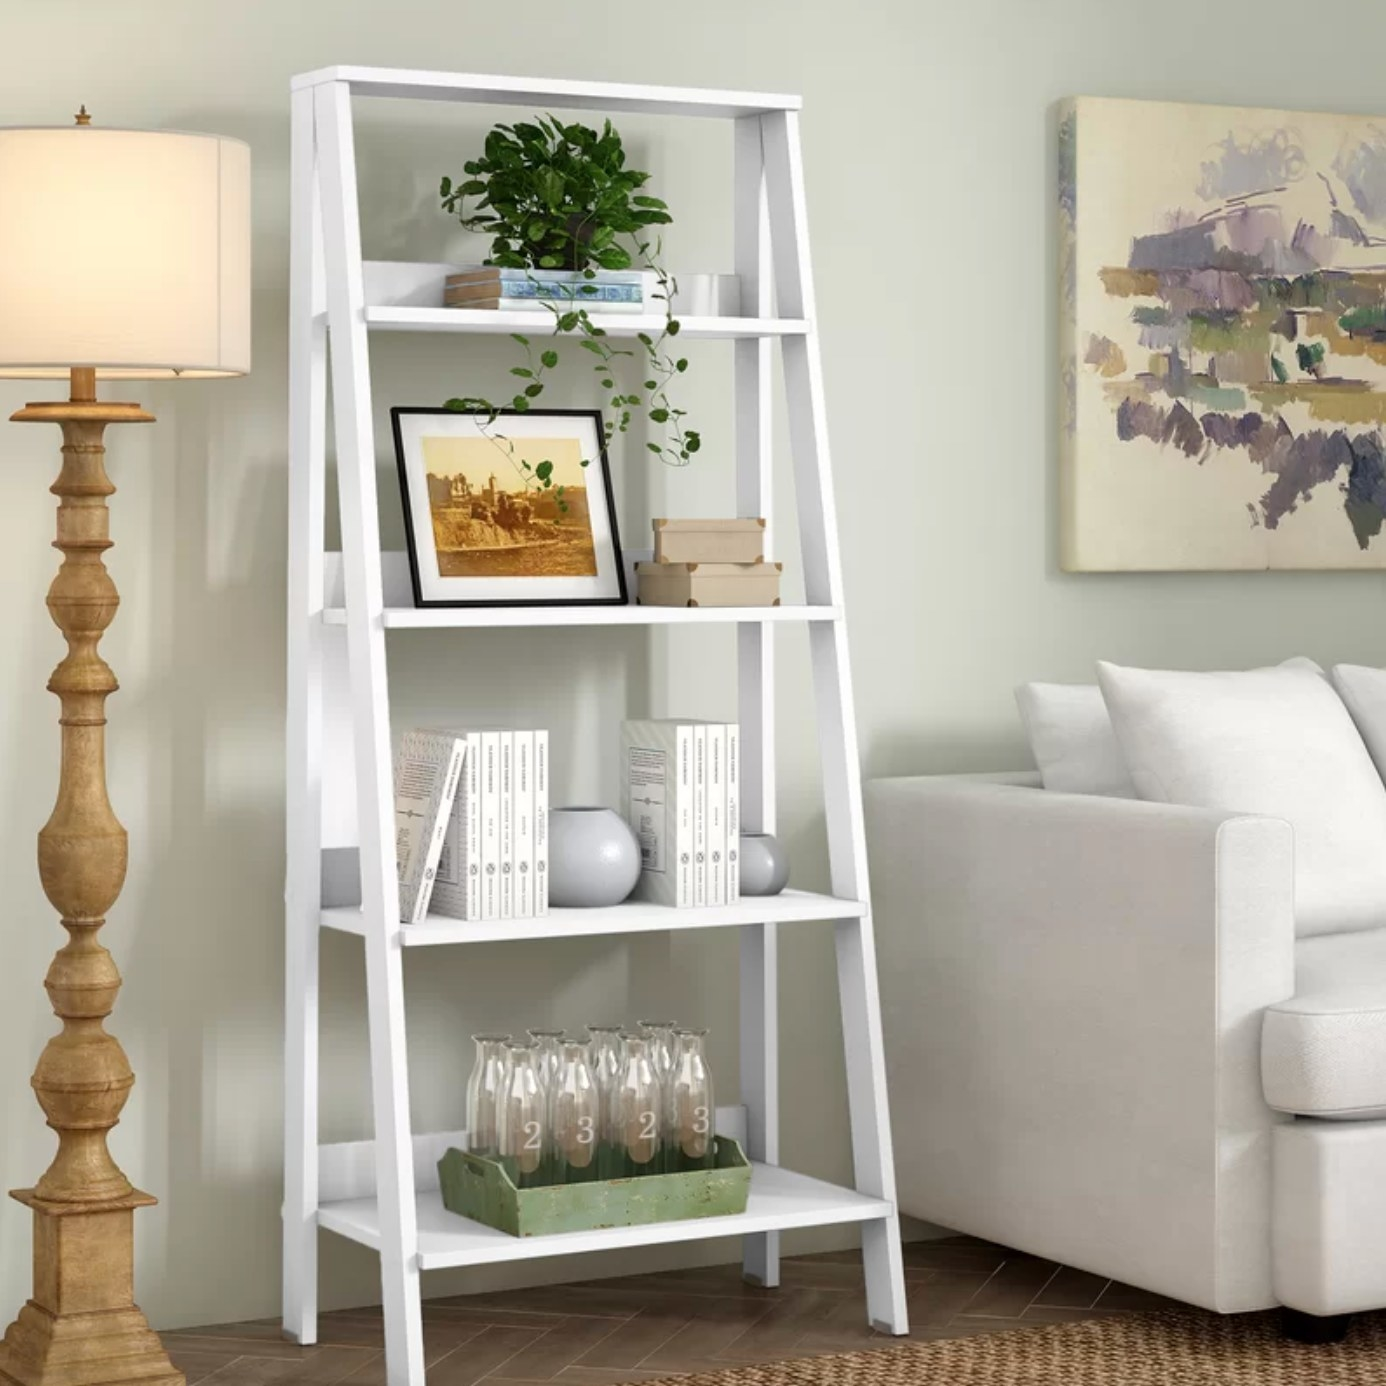 The ladder bookcase in white